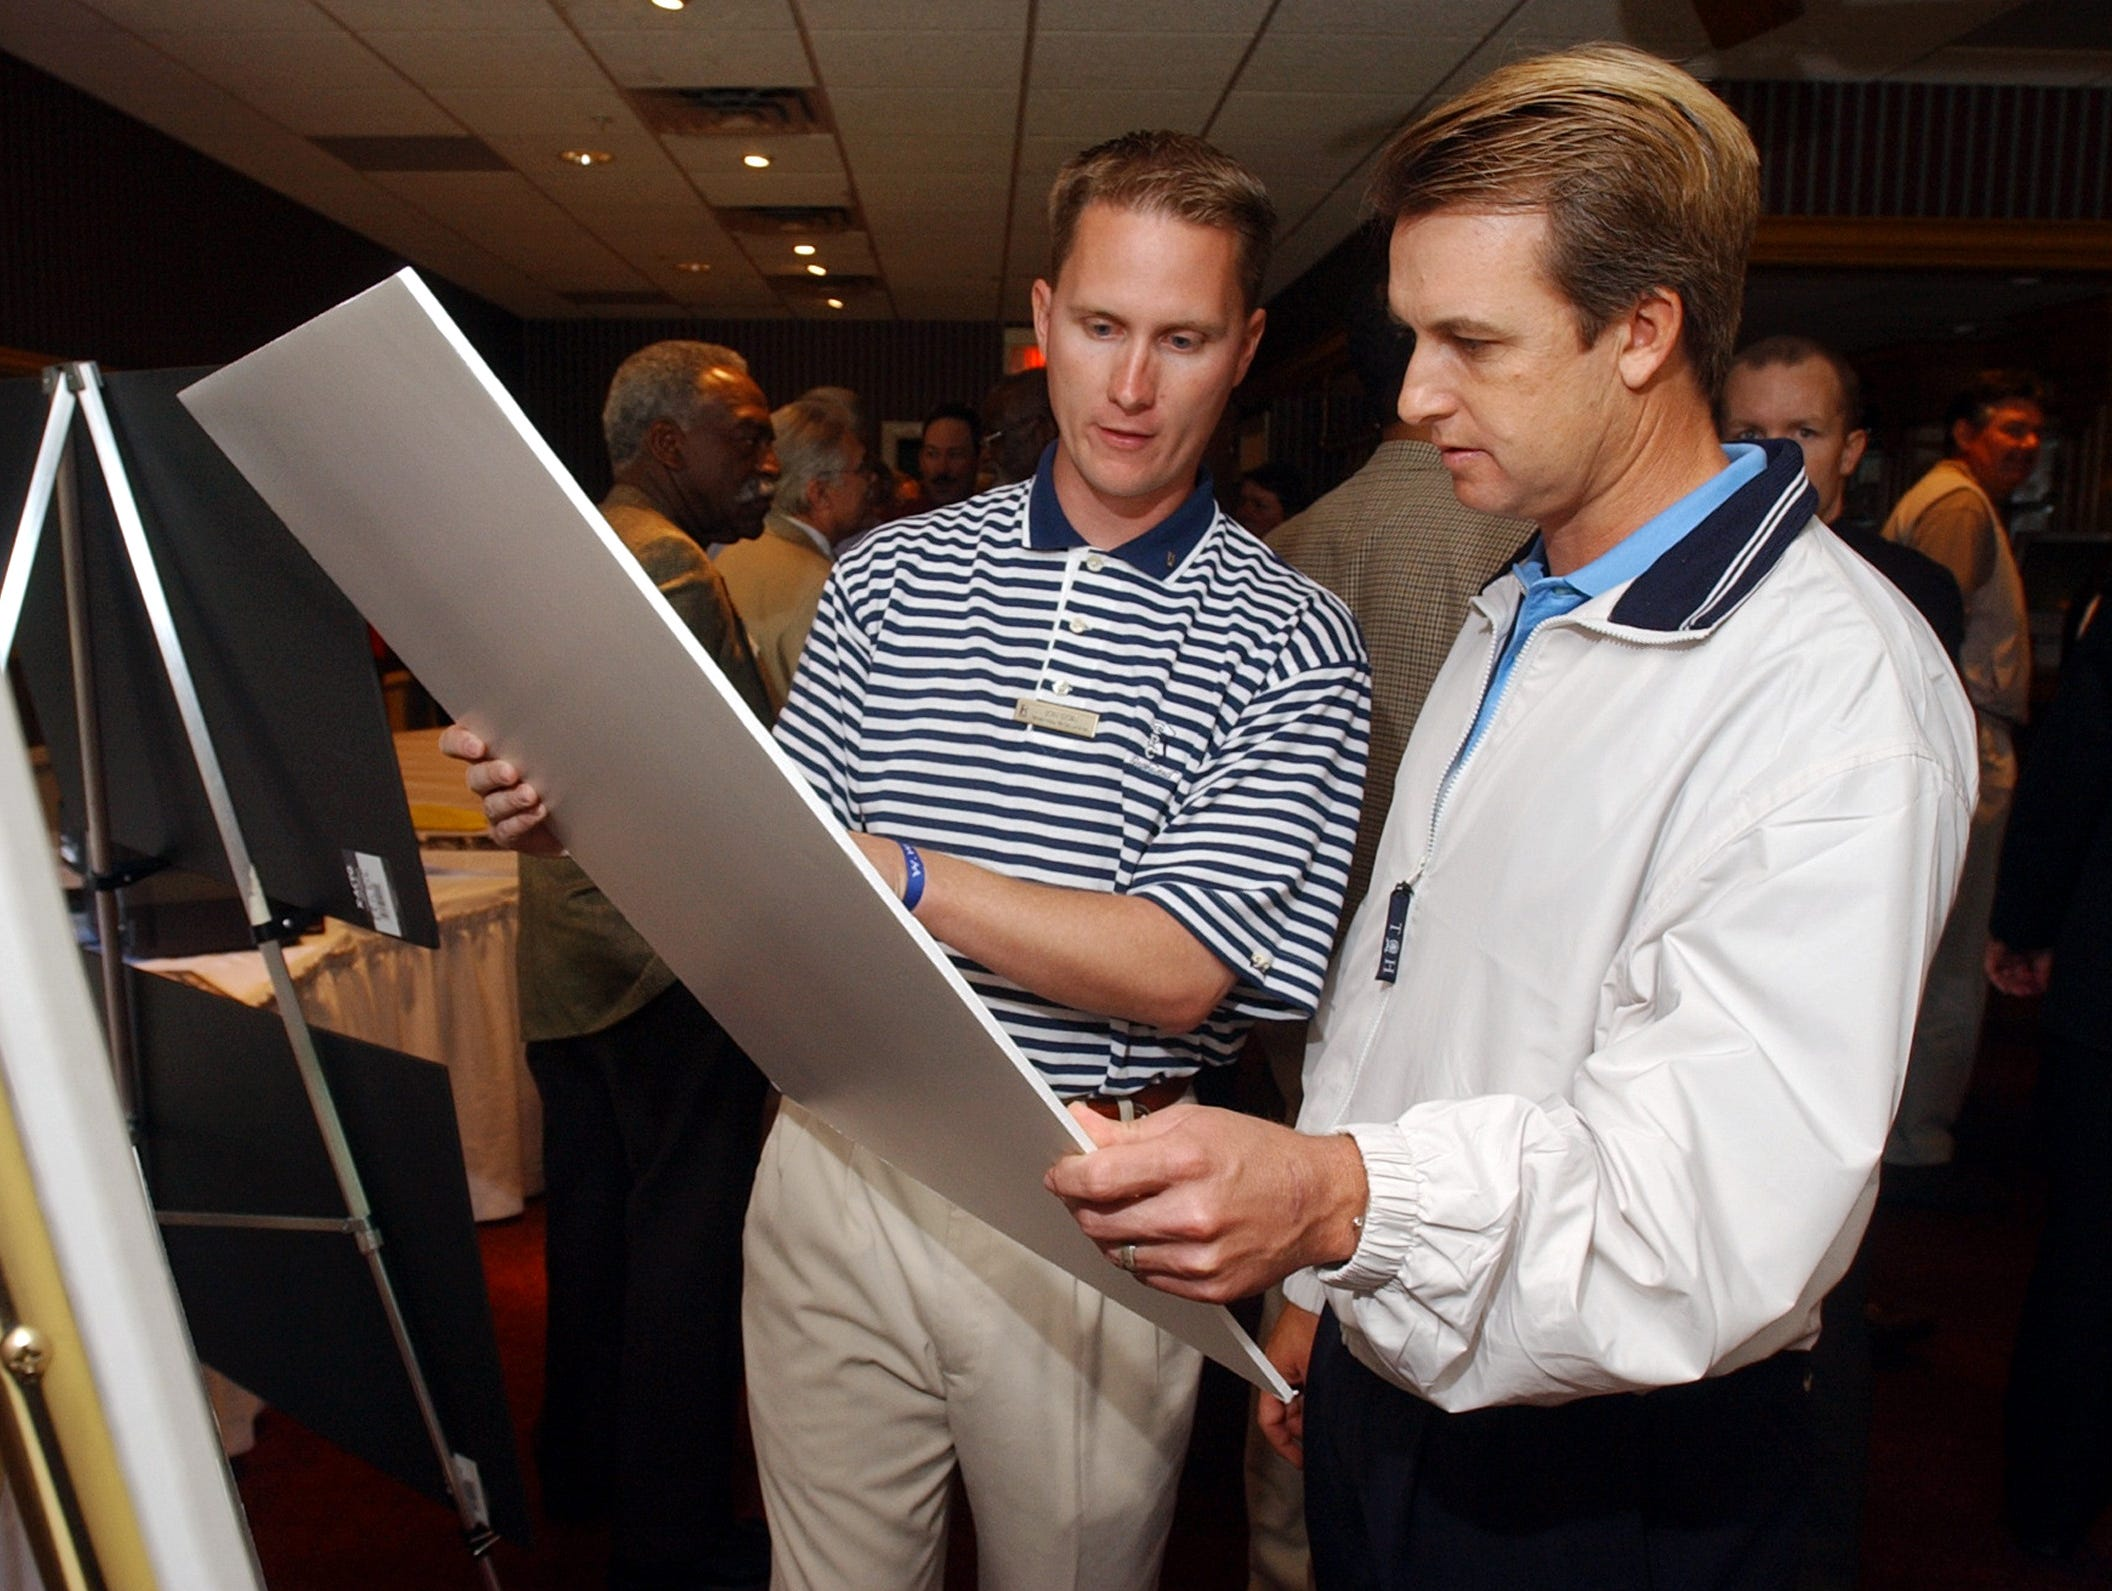 Wed, 14 Apr 04 (ddtoms1)  DIGITAL IMAGE by Dave Darnell.  Jon Goin (cq) (Left) and PGA tour player David Toms (cq) (Right) look over schematics showing changes to TPC Southwind during a luncheon at Germantown Country Club.  Goin is the head golf professional at Southwind and Toms is the defending champion of the FESJC.